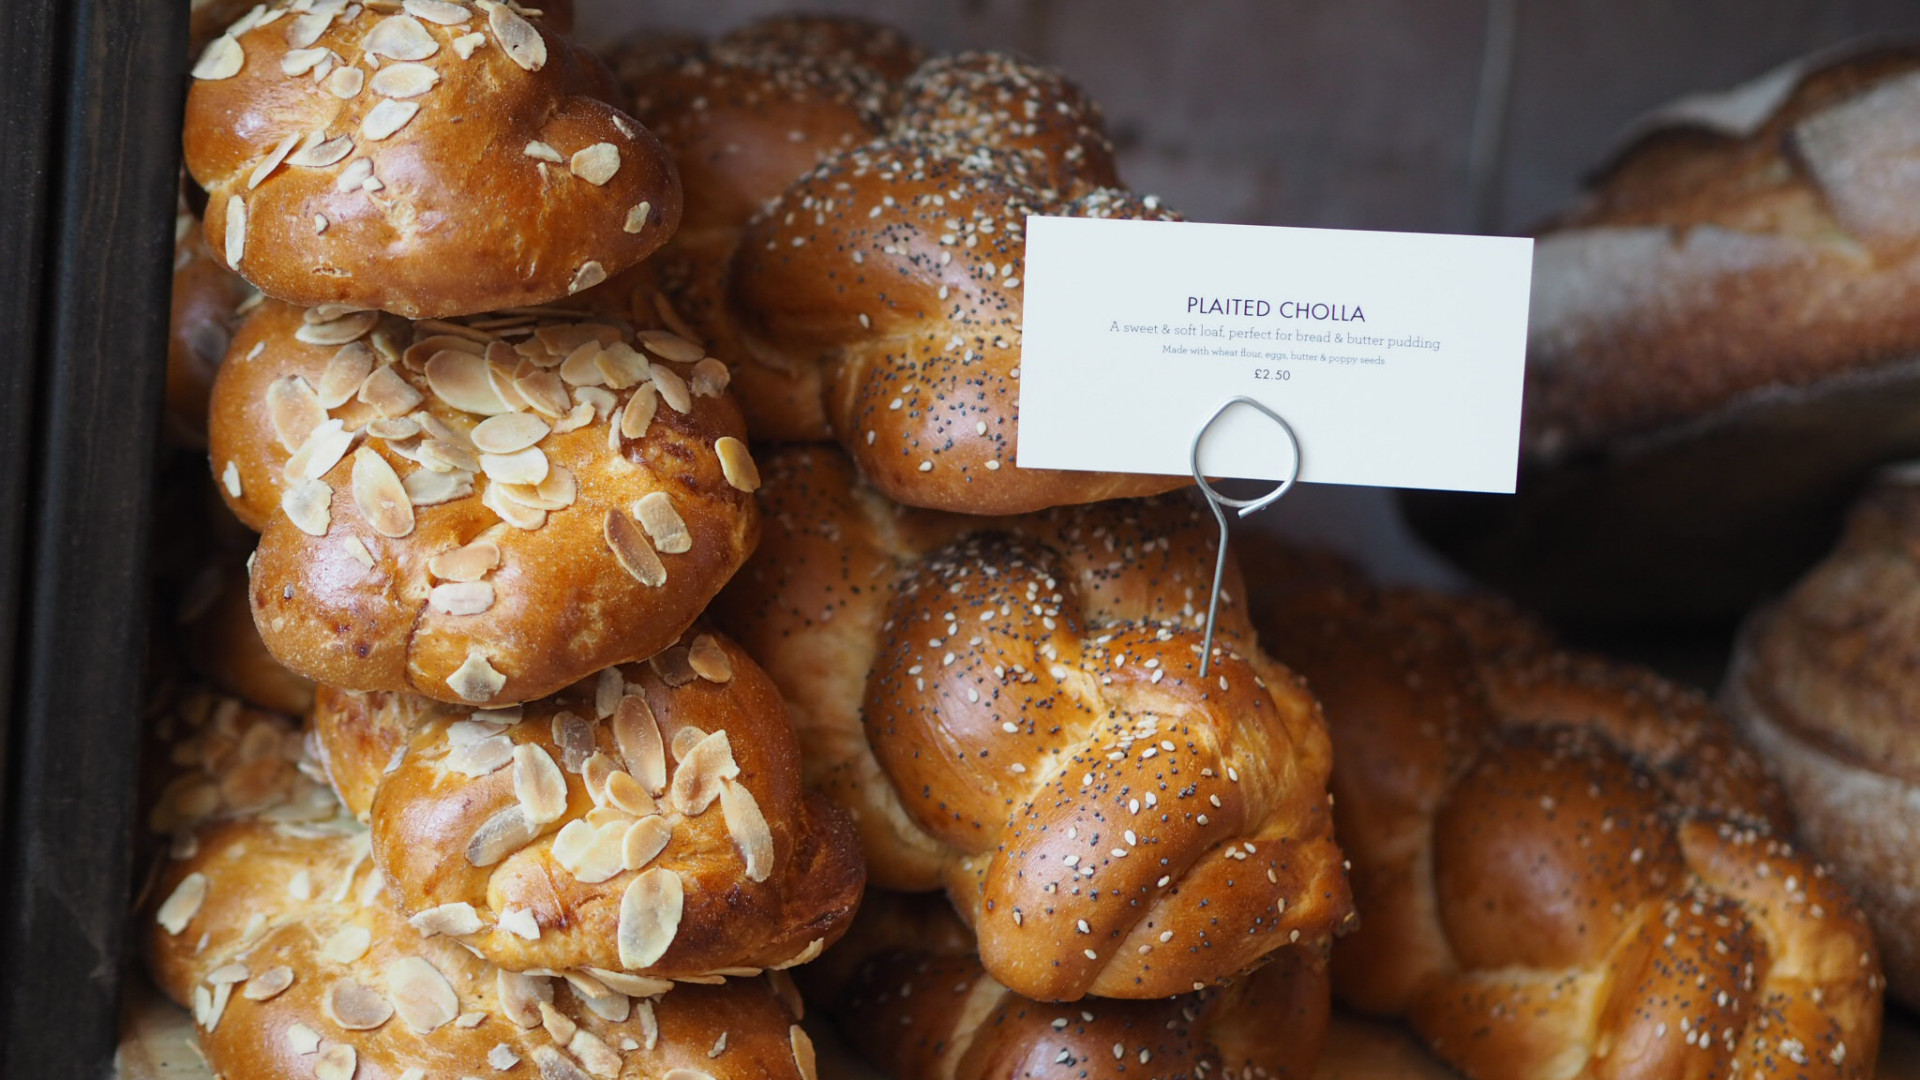 Marzipan challah and plaited challah bread from GAIL's Bakery